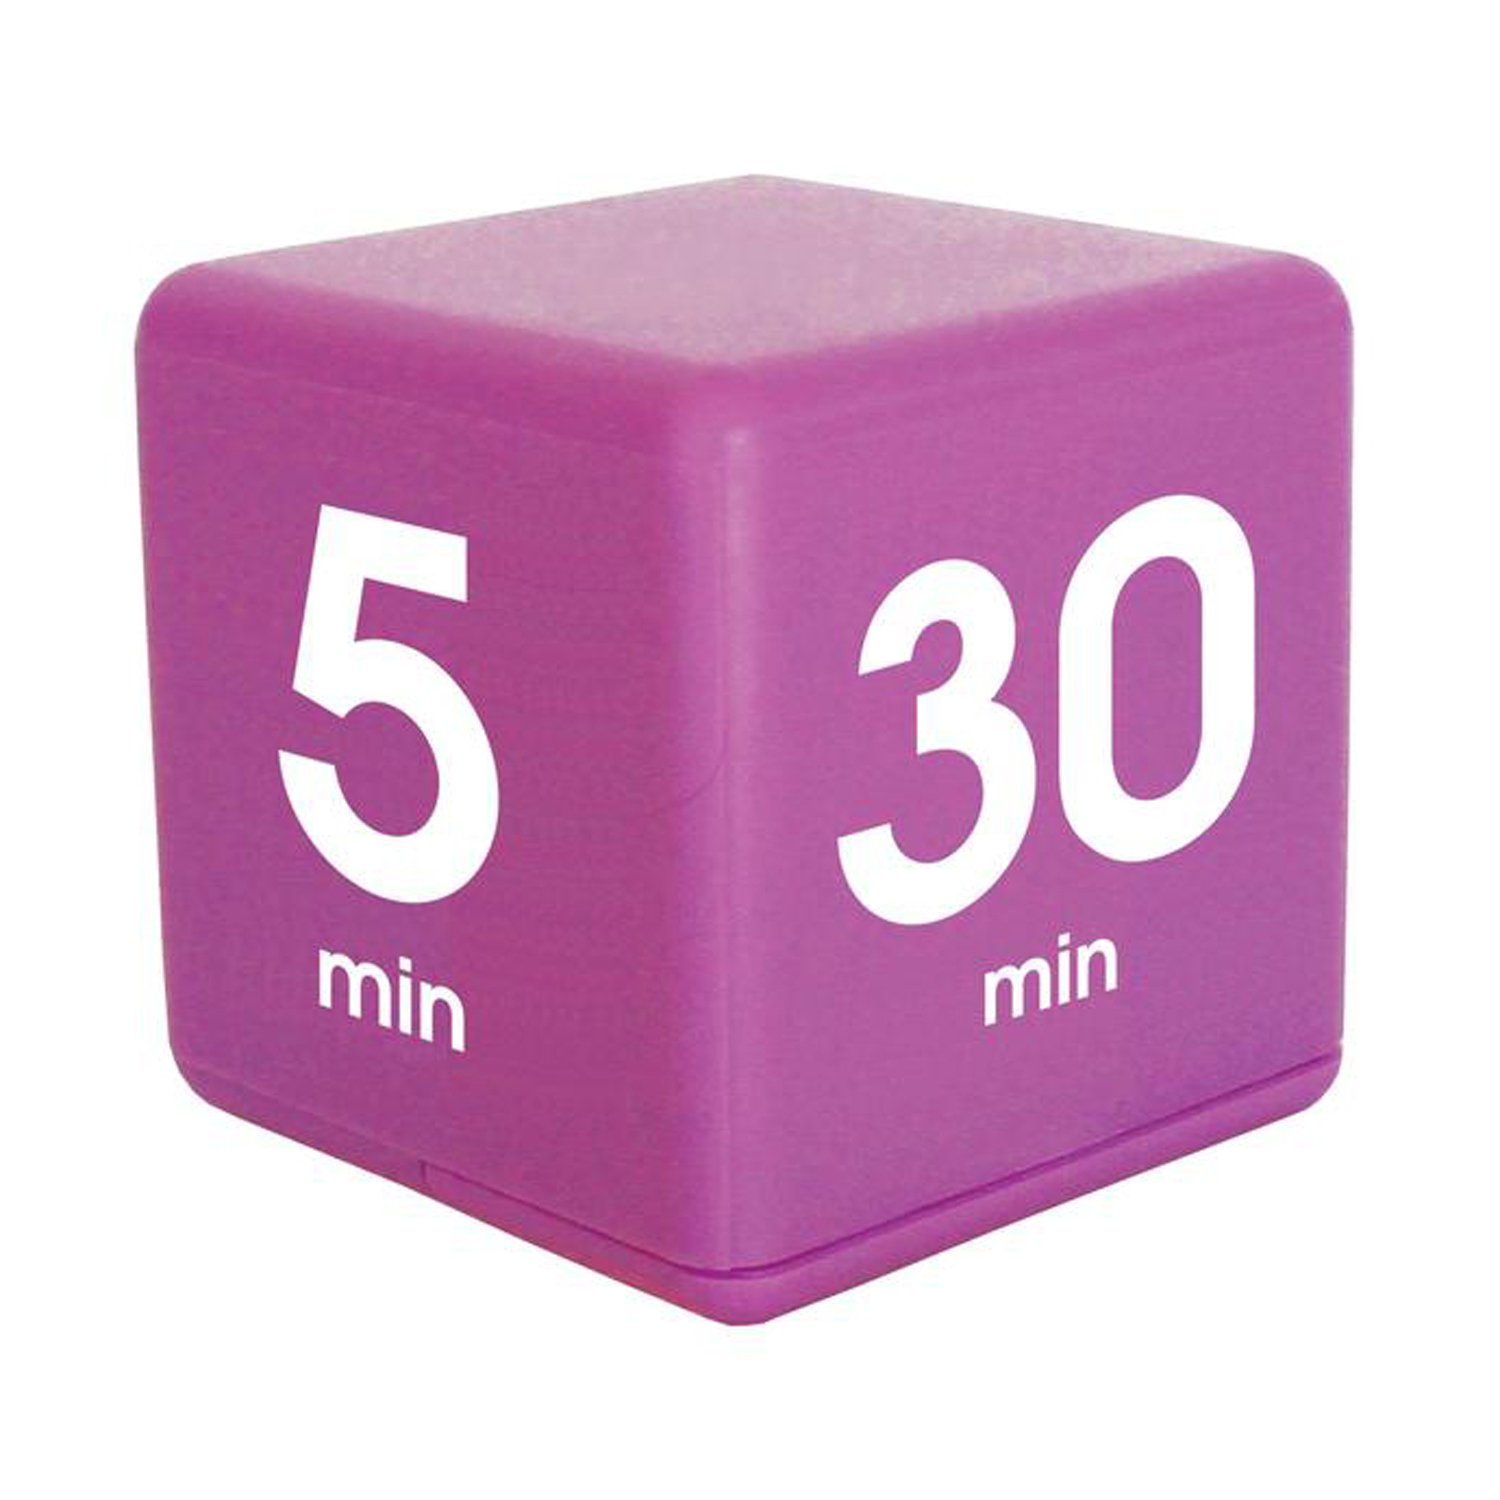 The Miracle TimeCube Timer, 5, 10, 20 and 30 Minutes, for Time Management, Kitchen Timer, Kids Timer, Workout Timer, Purple by Datexx (Image #2)